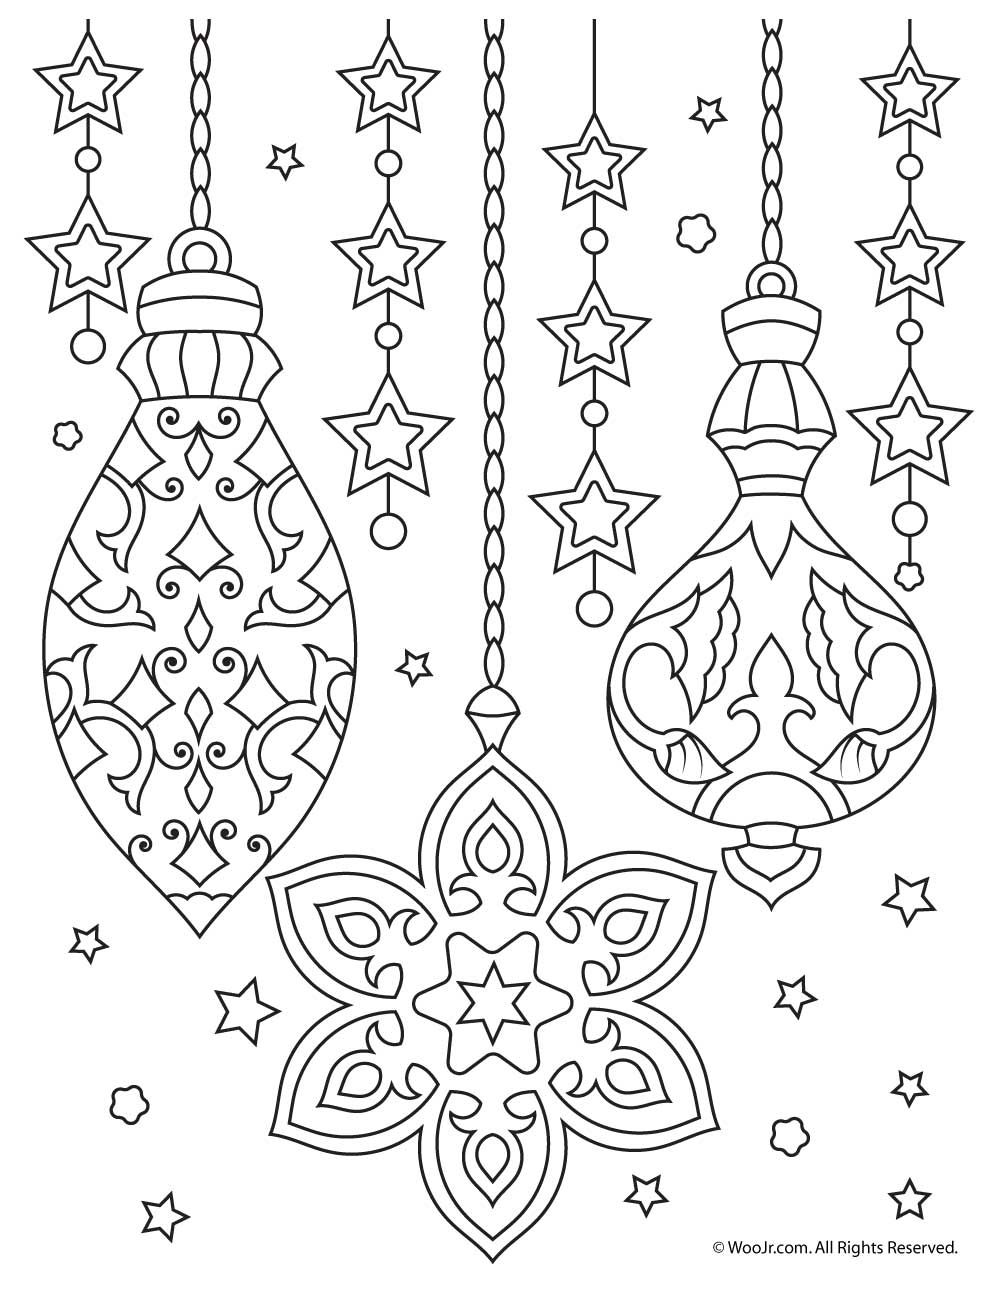 Christmas Ornaments Adult Coloring Printable is part of Christmas coloring sheets, Christmas coloring pages, Coloring pages, Adult coloring pages, Adult coloring, Flower coloring pages - Christmas Ornaments Adult Coloring Printable